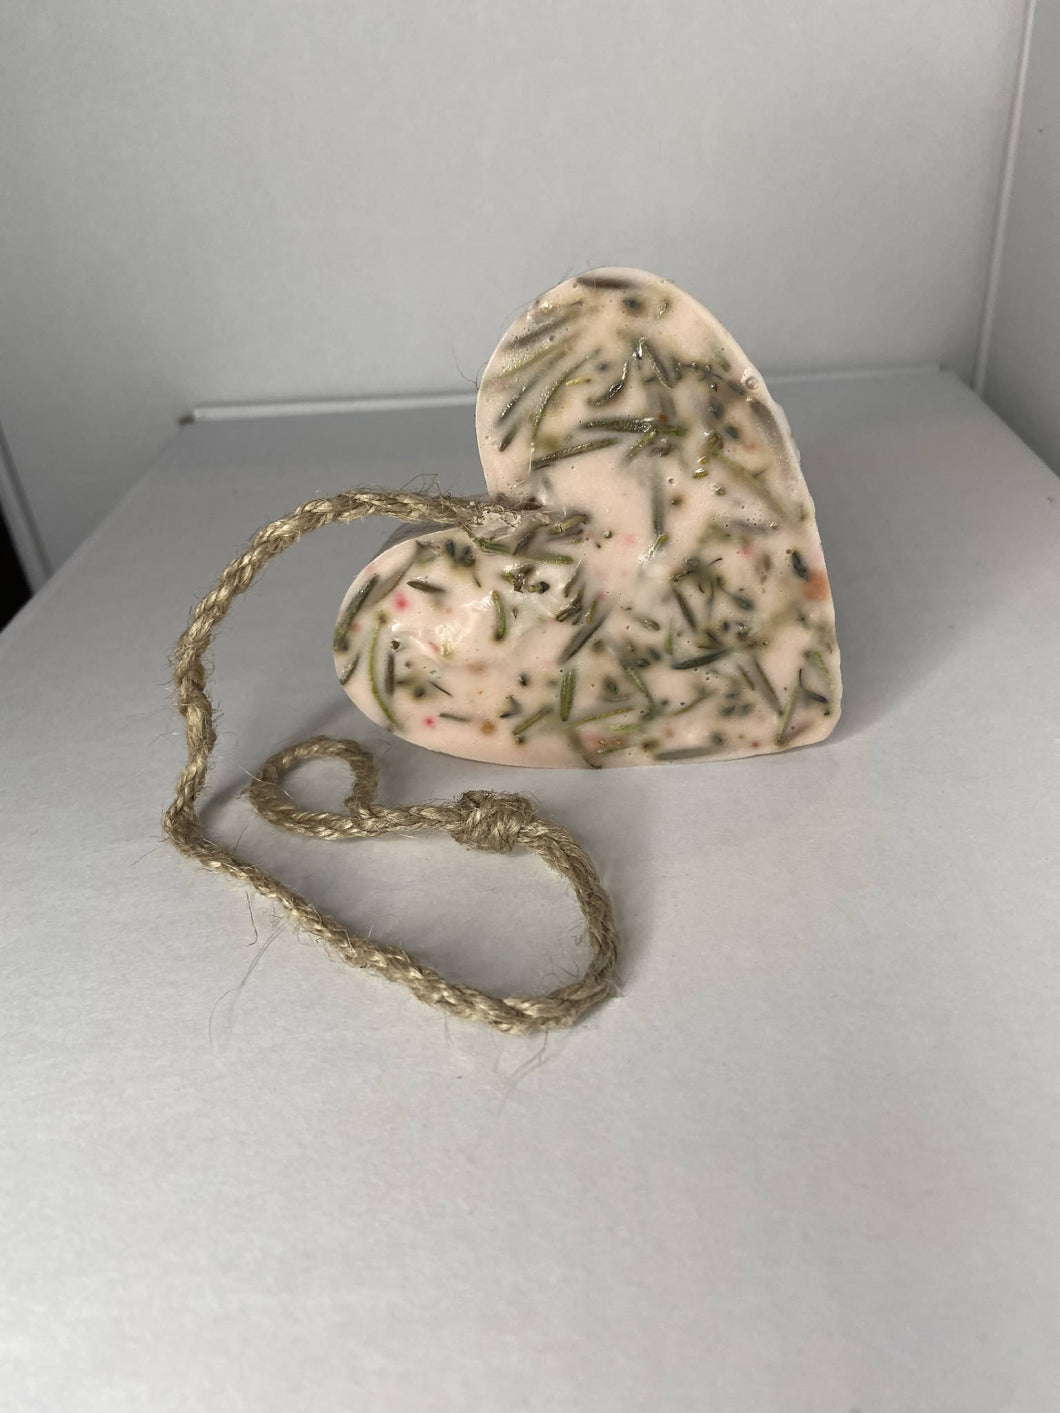 Soap on a Rope - Large Heart Shape